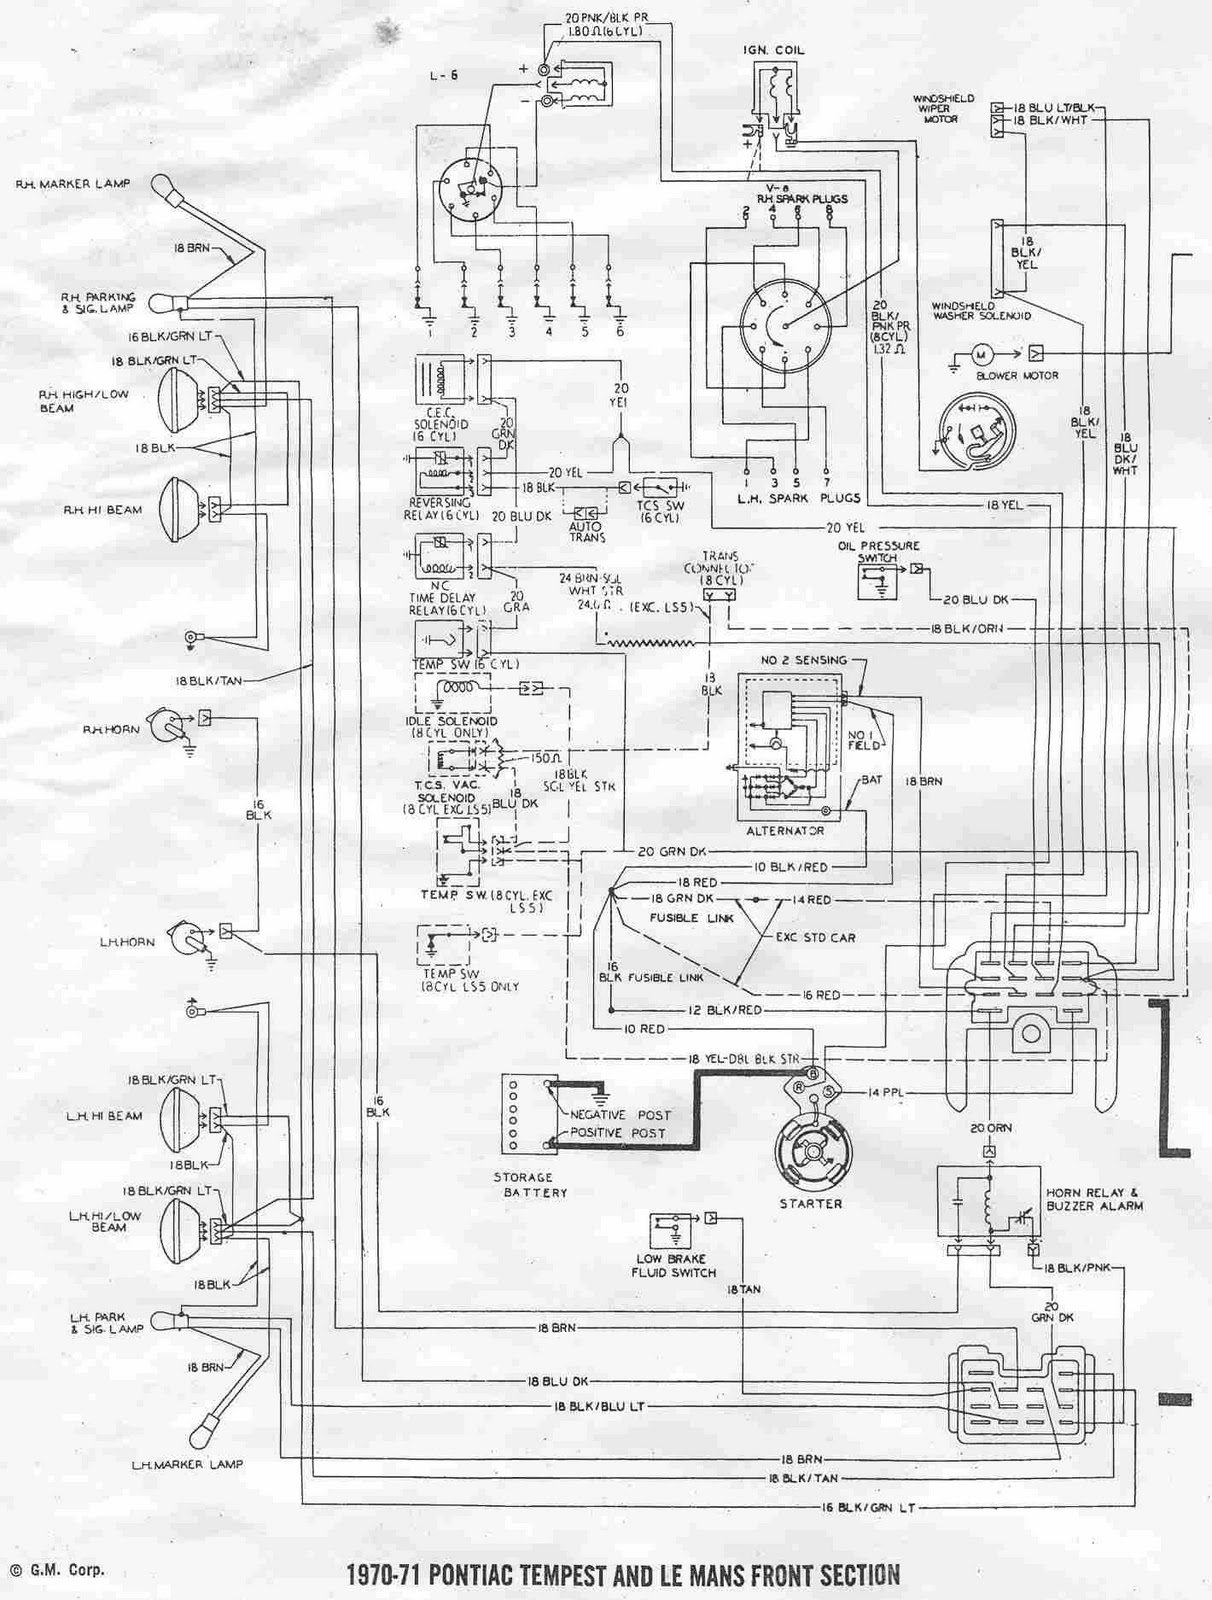 1967 pontiac lemans wiring diagram 1967 wiring diagrams online pontiac tempest and le mans 1970 1971 front section wiring diagram